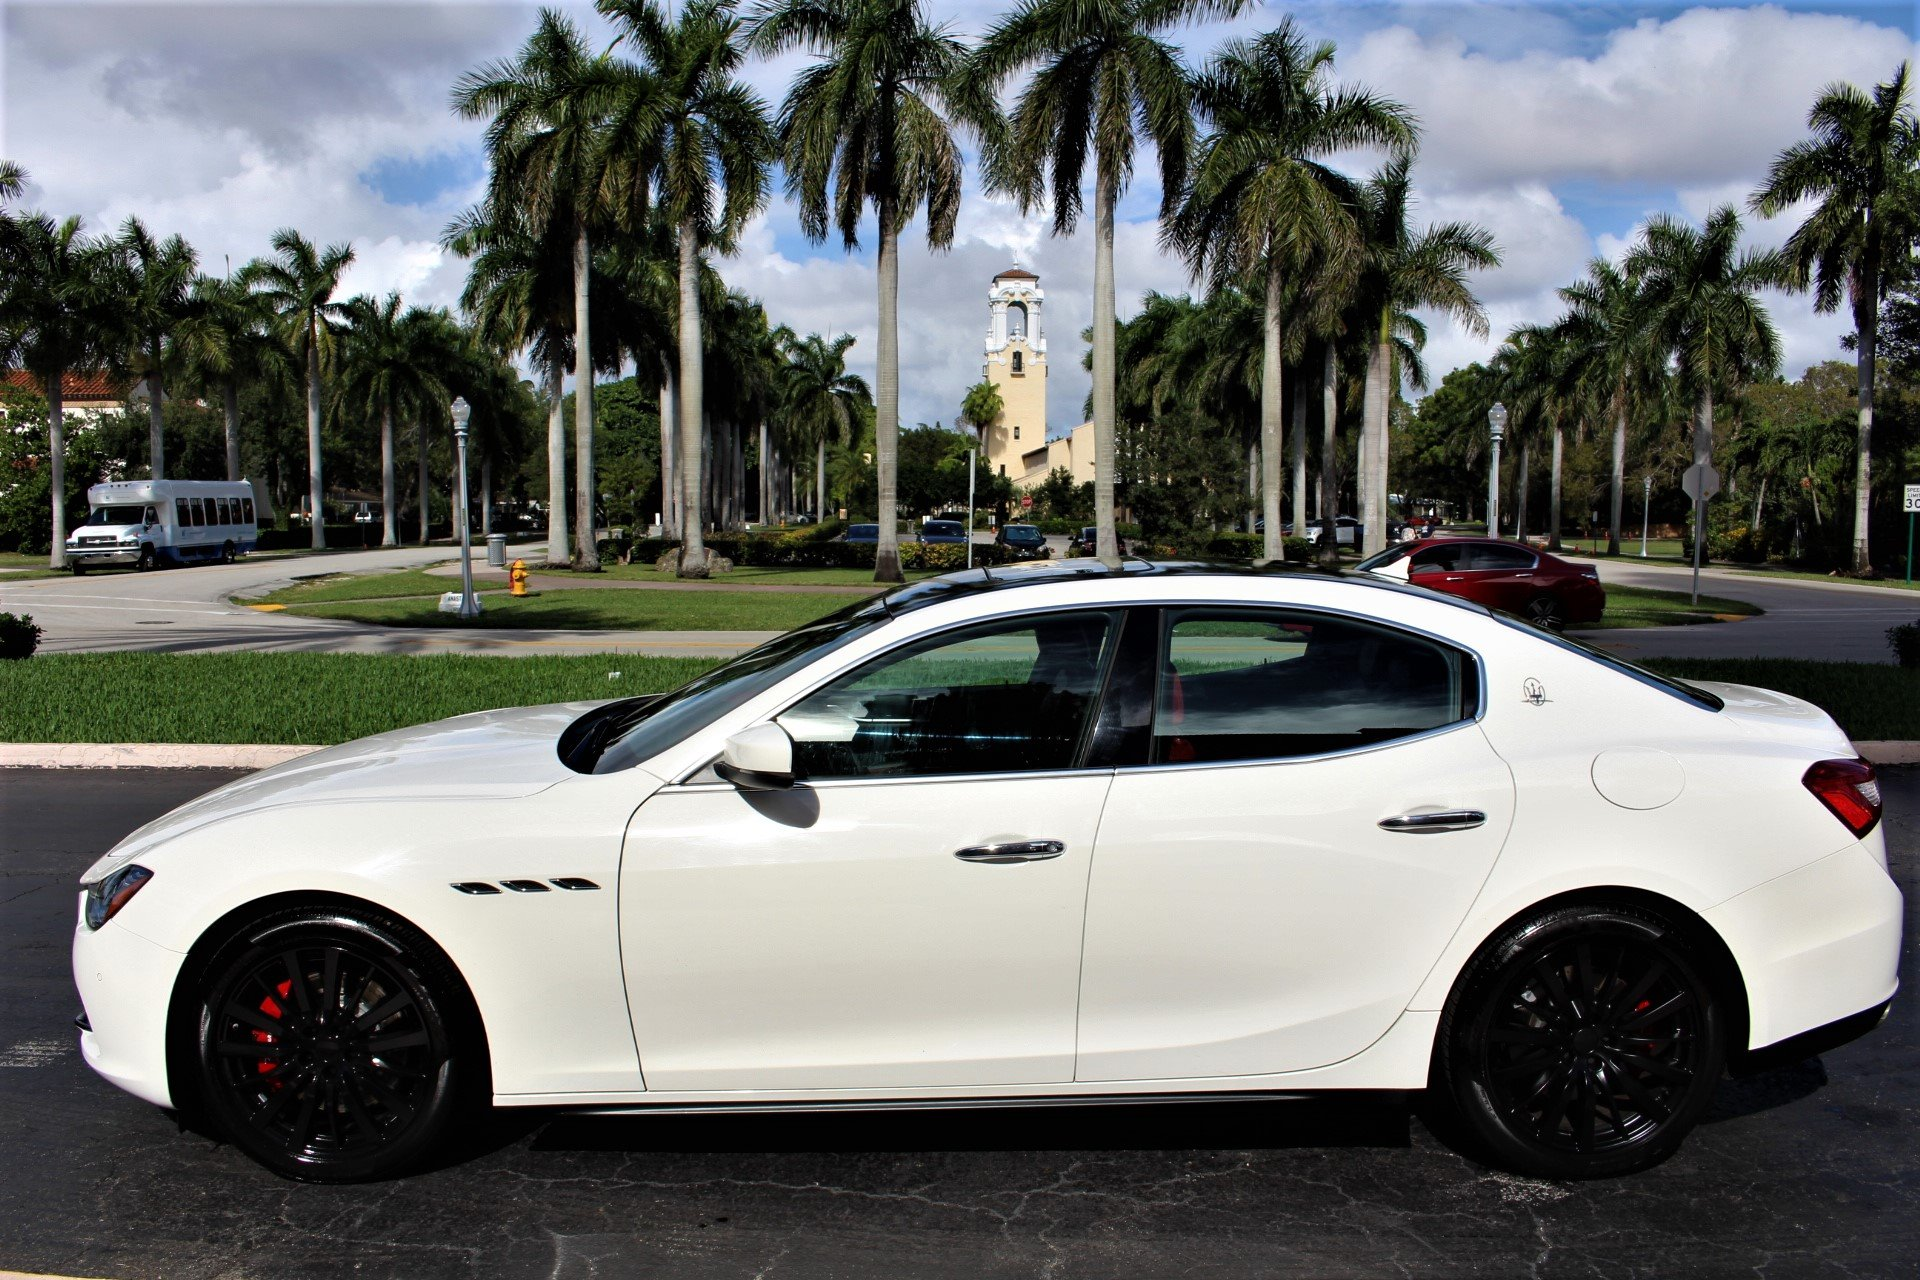 Used 2017 Maserati Ghibli SQ4 AWD S Q4 for sale $39,850 at The Gables Sports Cars in Miami FL 33146 4